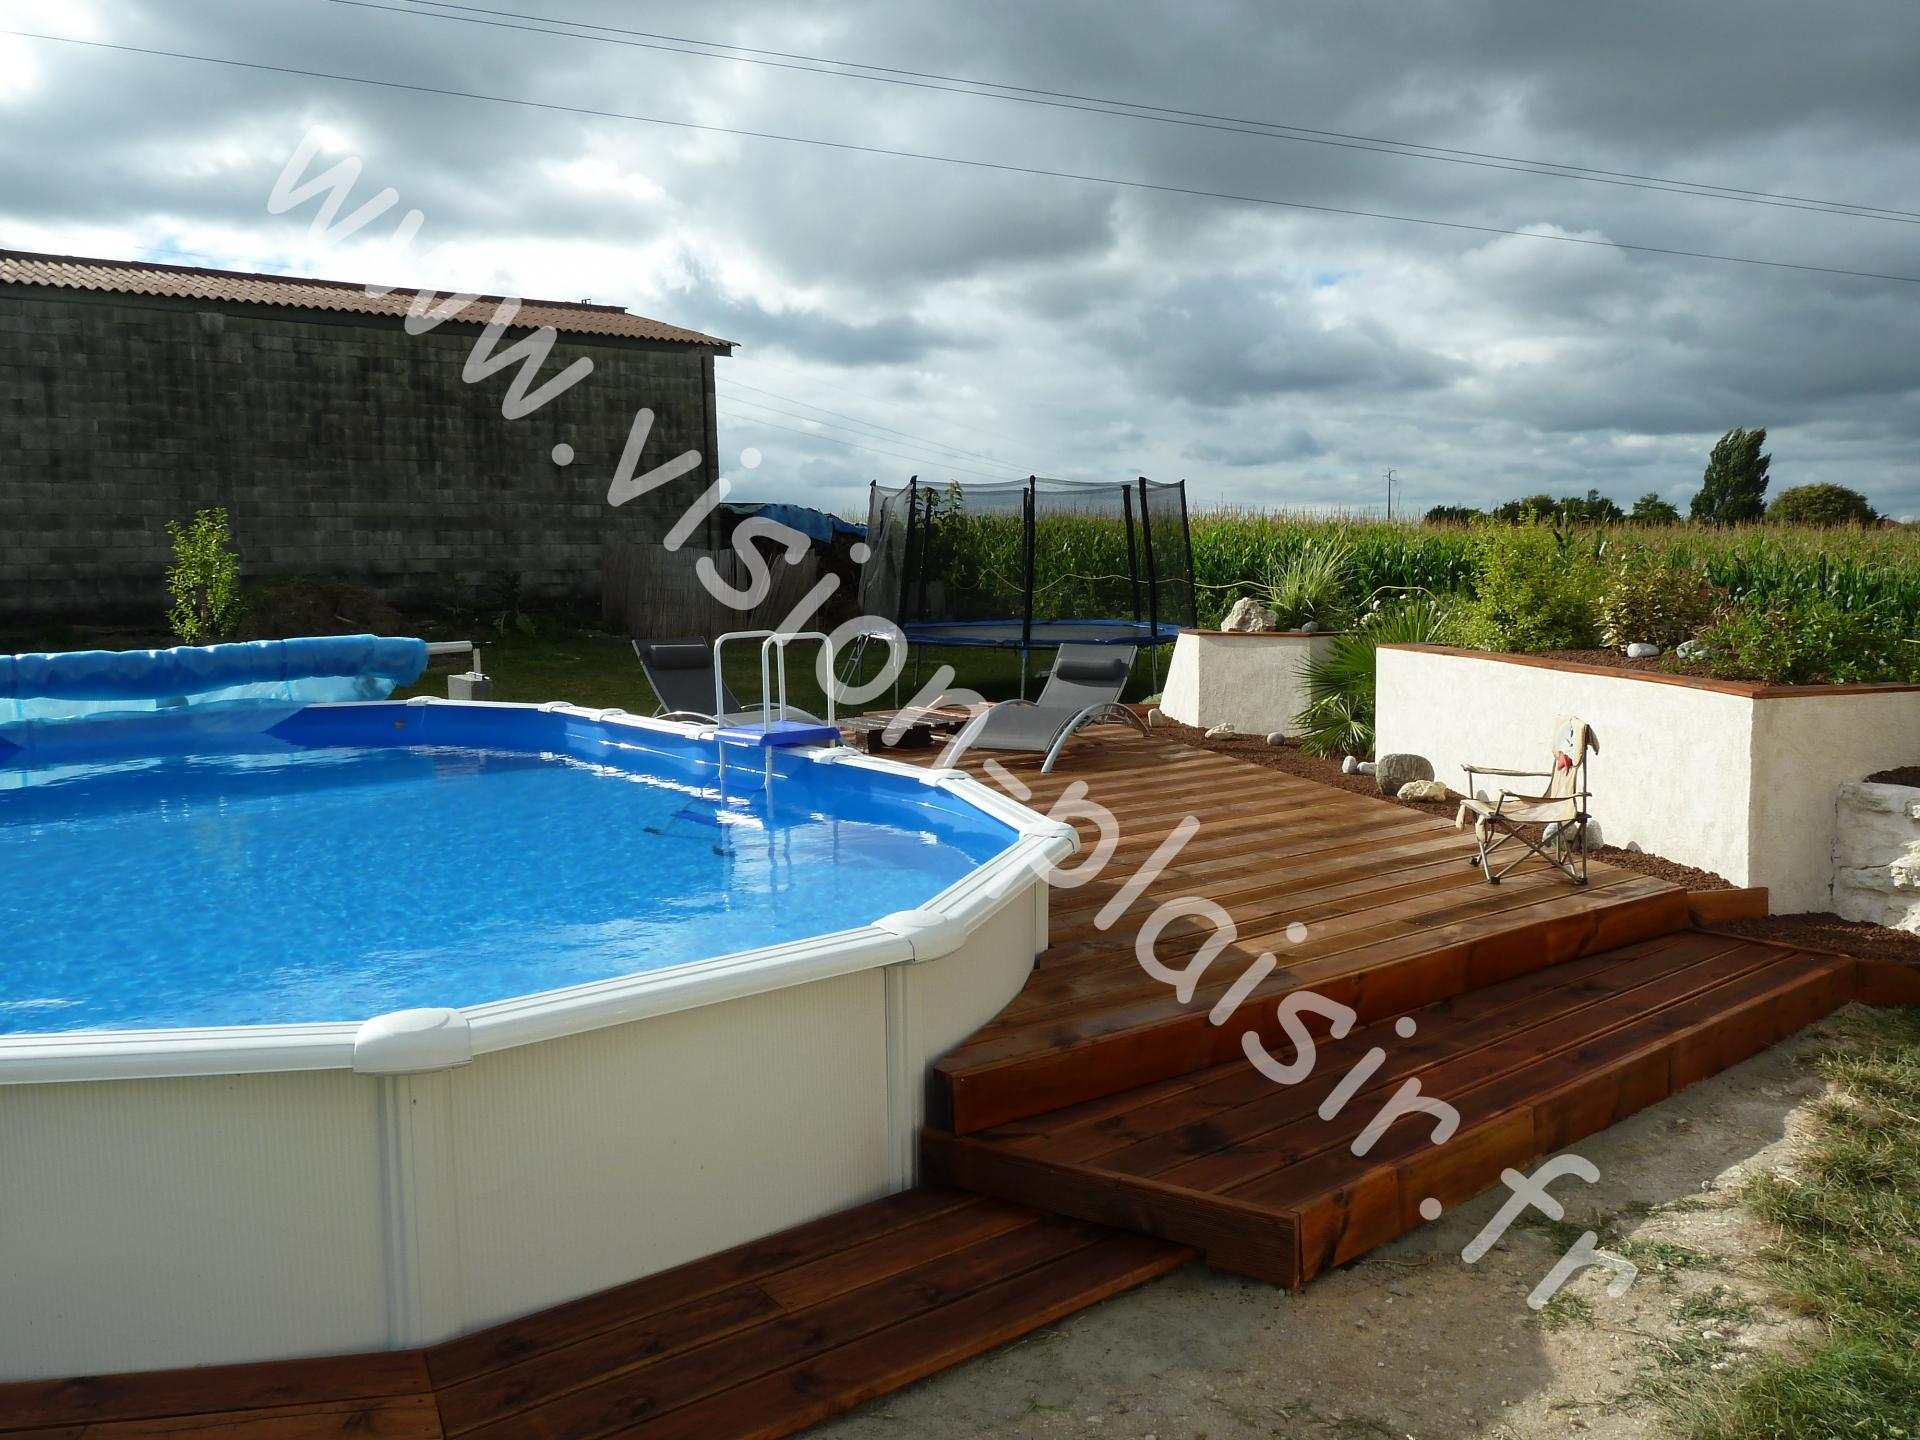 Blog de vision plaisir piscine hors sol semi enterr e for Piscine hexagonale semi enterree